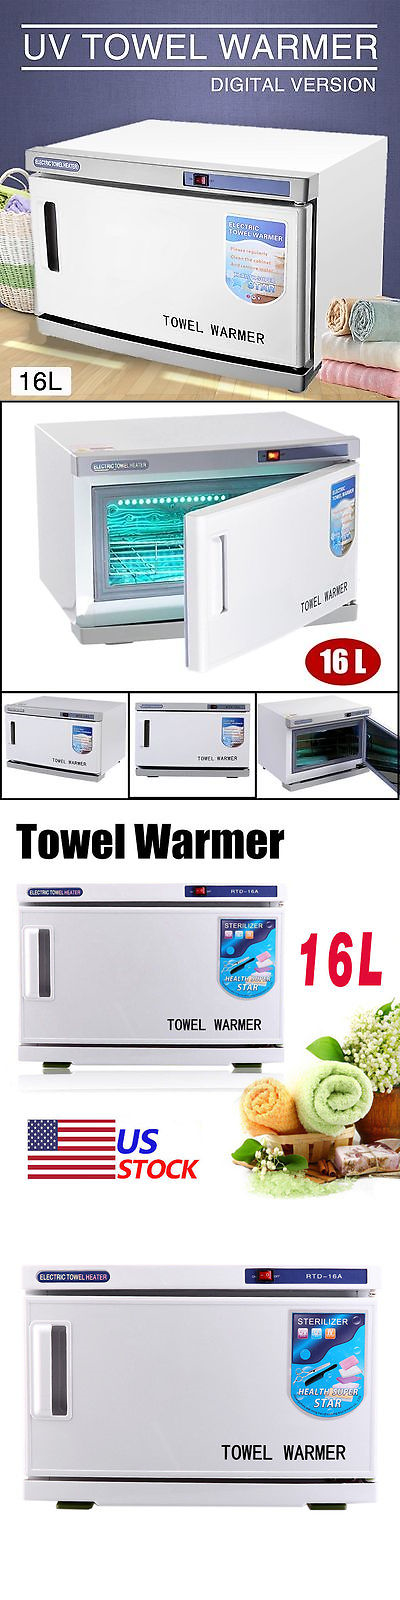 Sterilizers and Towel Warmers 2 In 1 Uv Sterilizer 16L Facial Towel Warmer Cabinet Spa  sc 1 st  Pinterest : cheap towel warmer cabinet - Cheerinfomania.Com